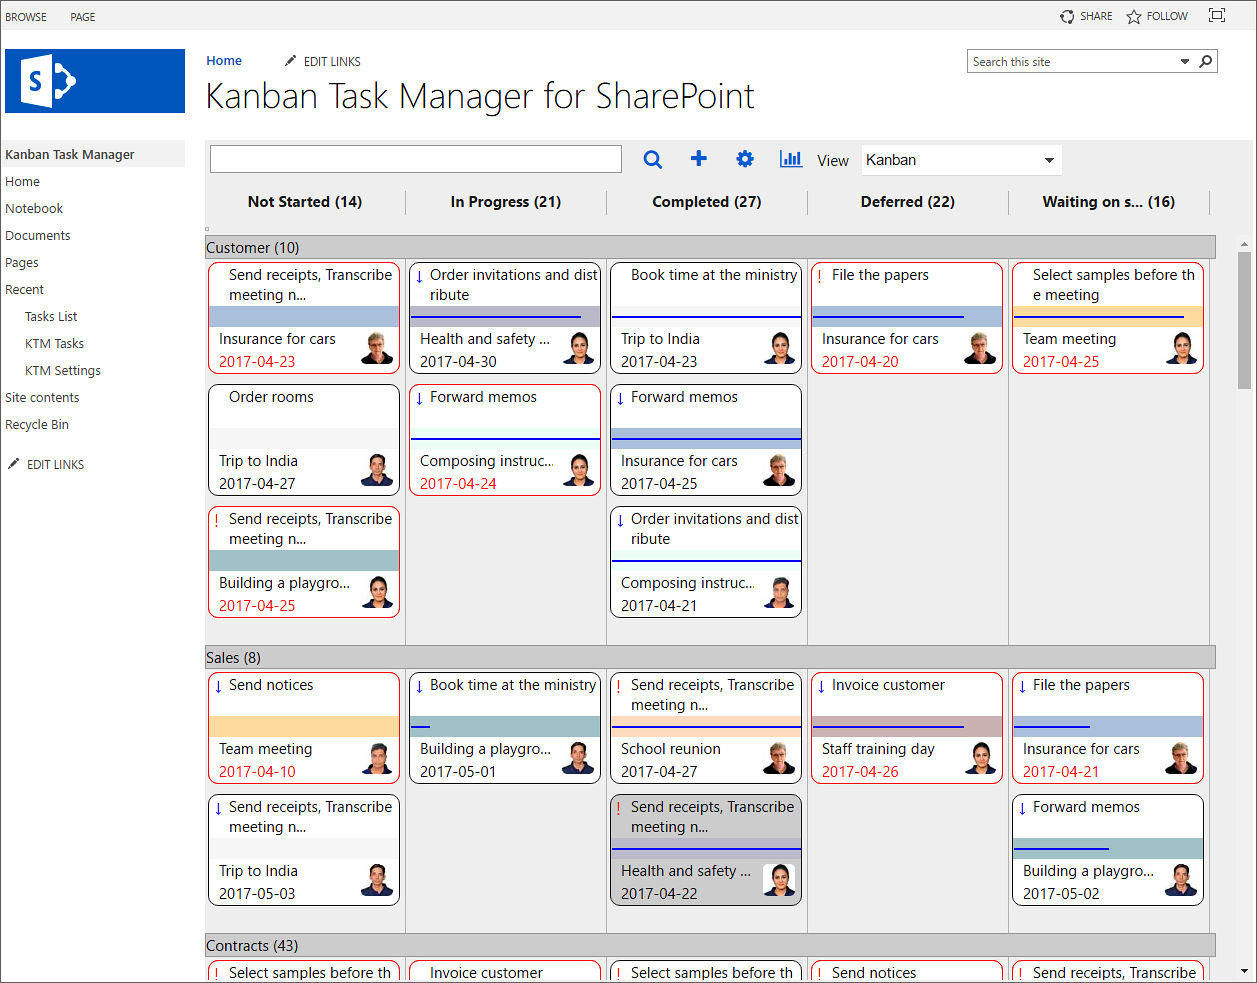 The Kanban Task Manager for SharePoint kanban view